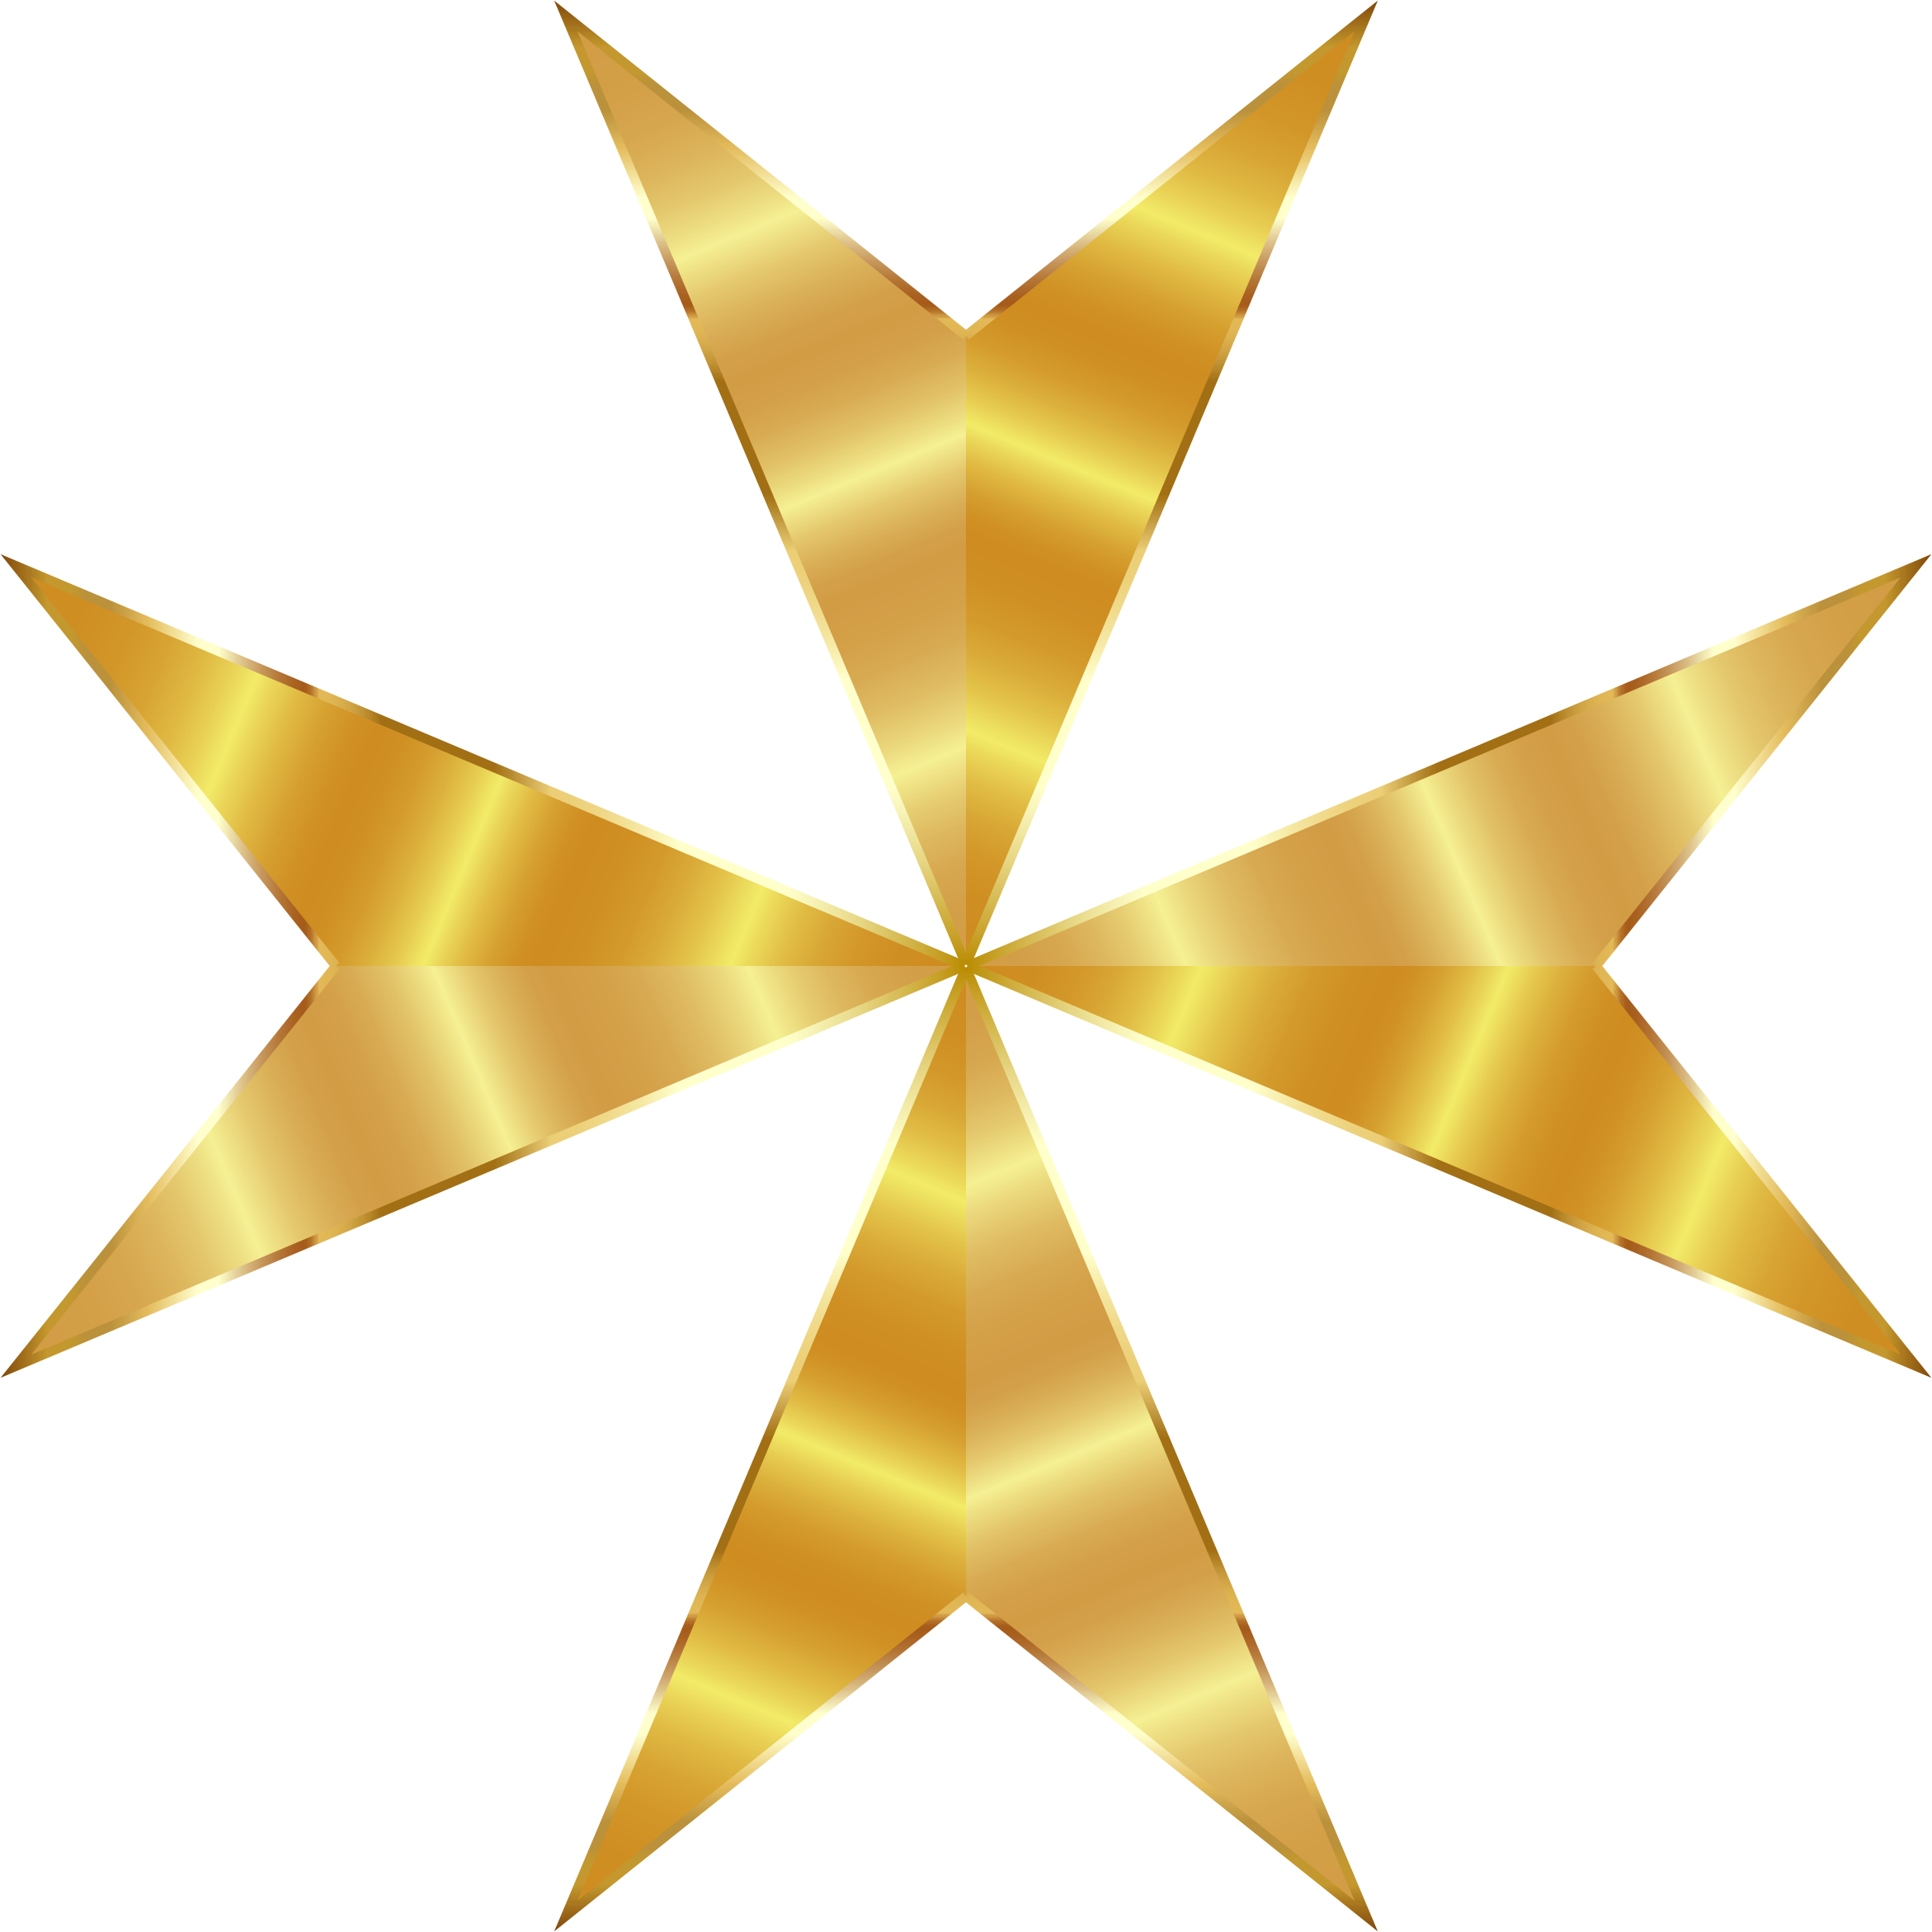 Clipart - Gold Maltese Cross Mark II No Background